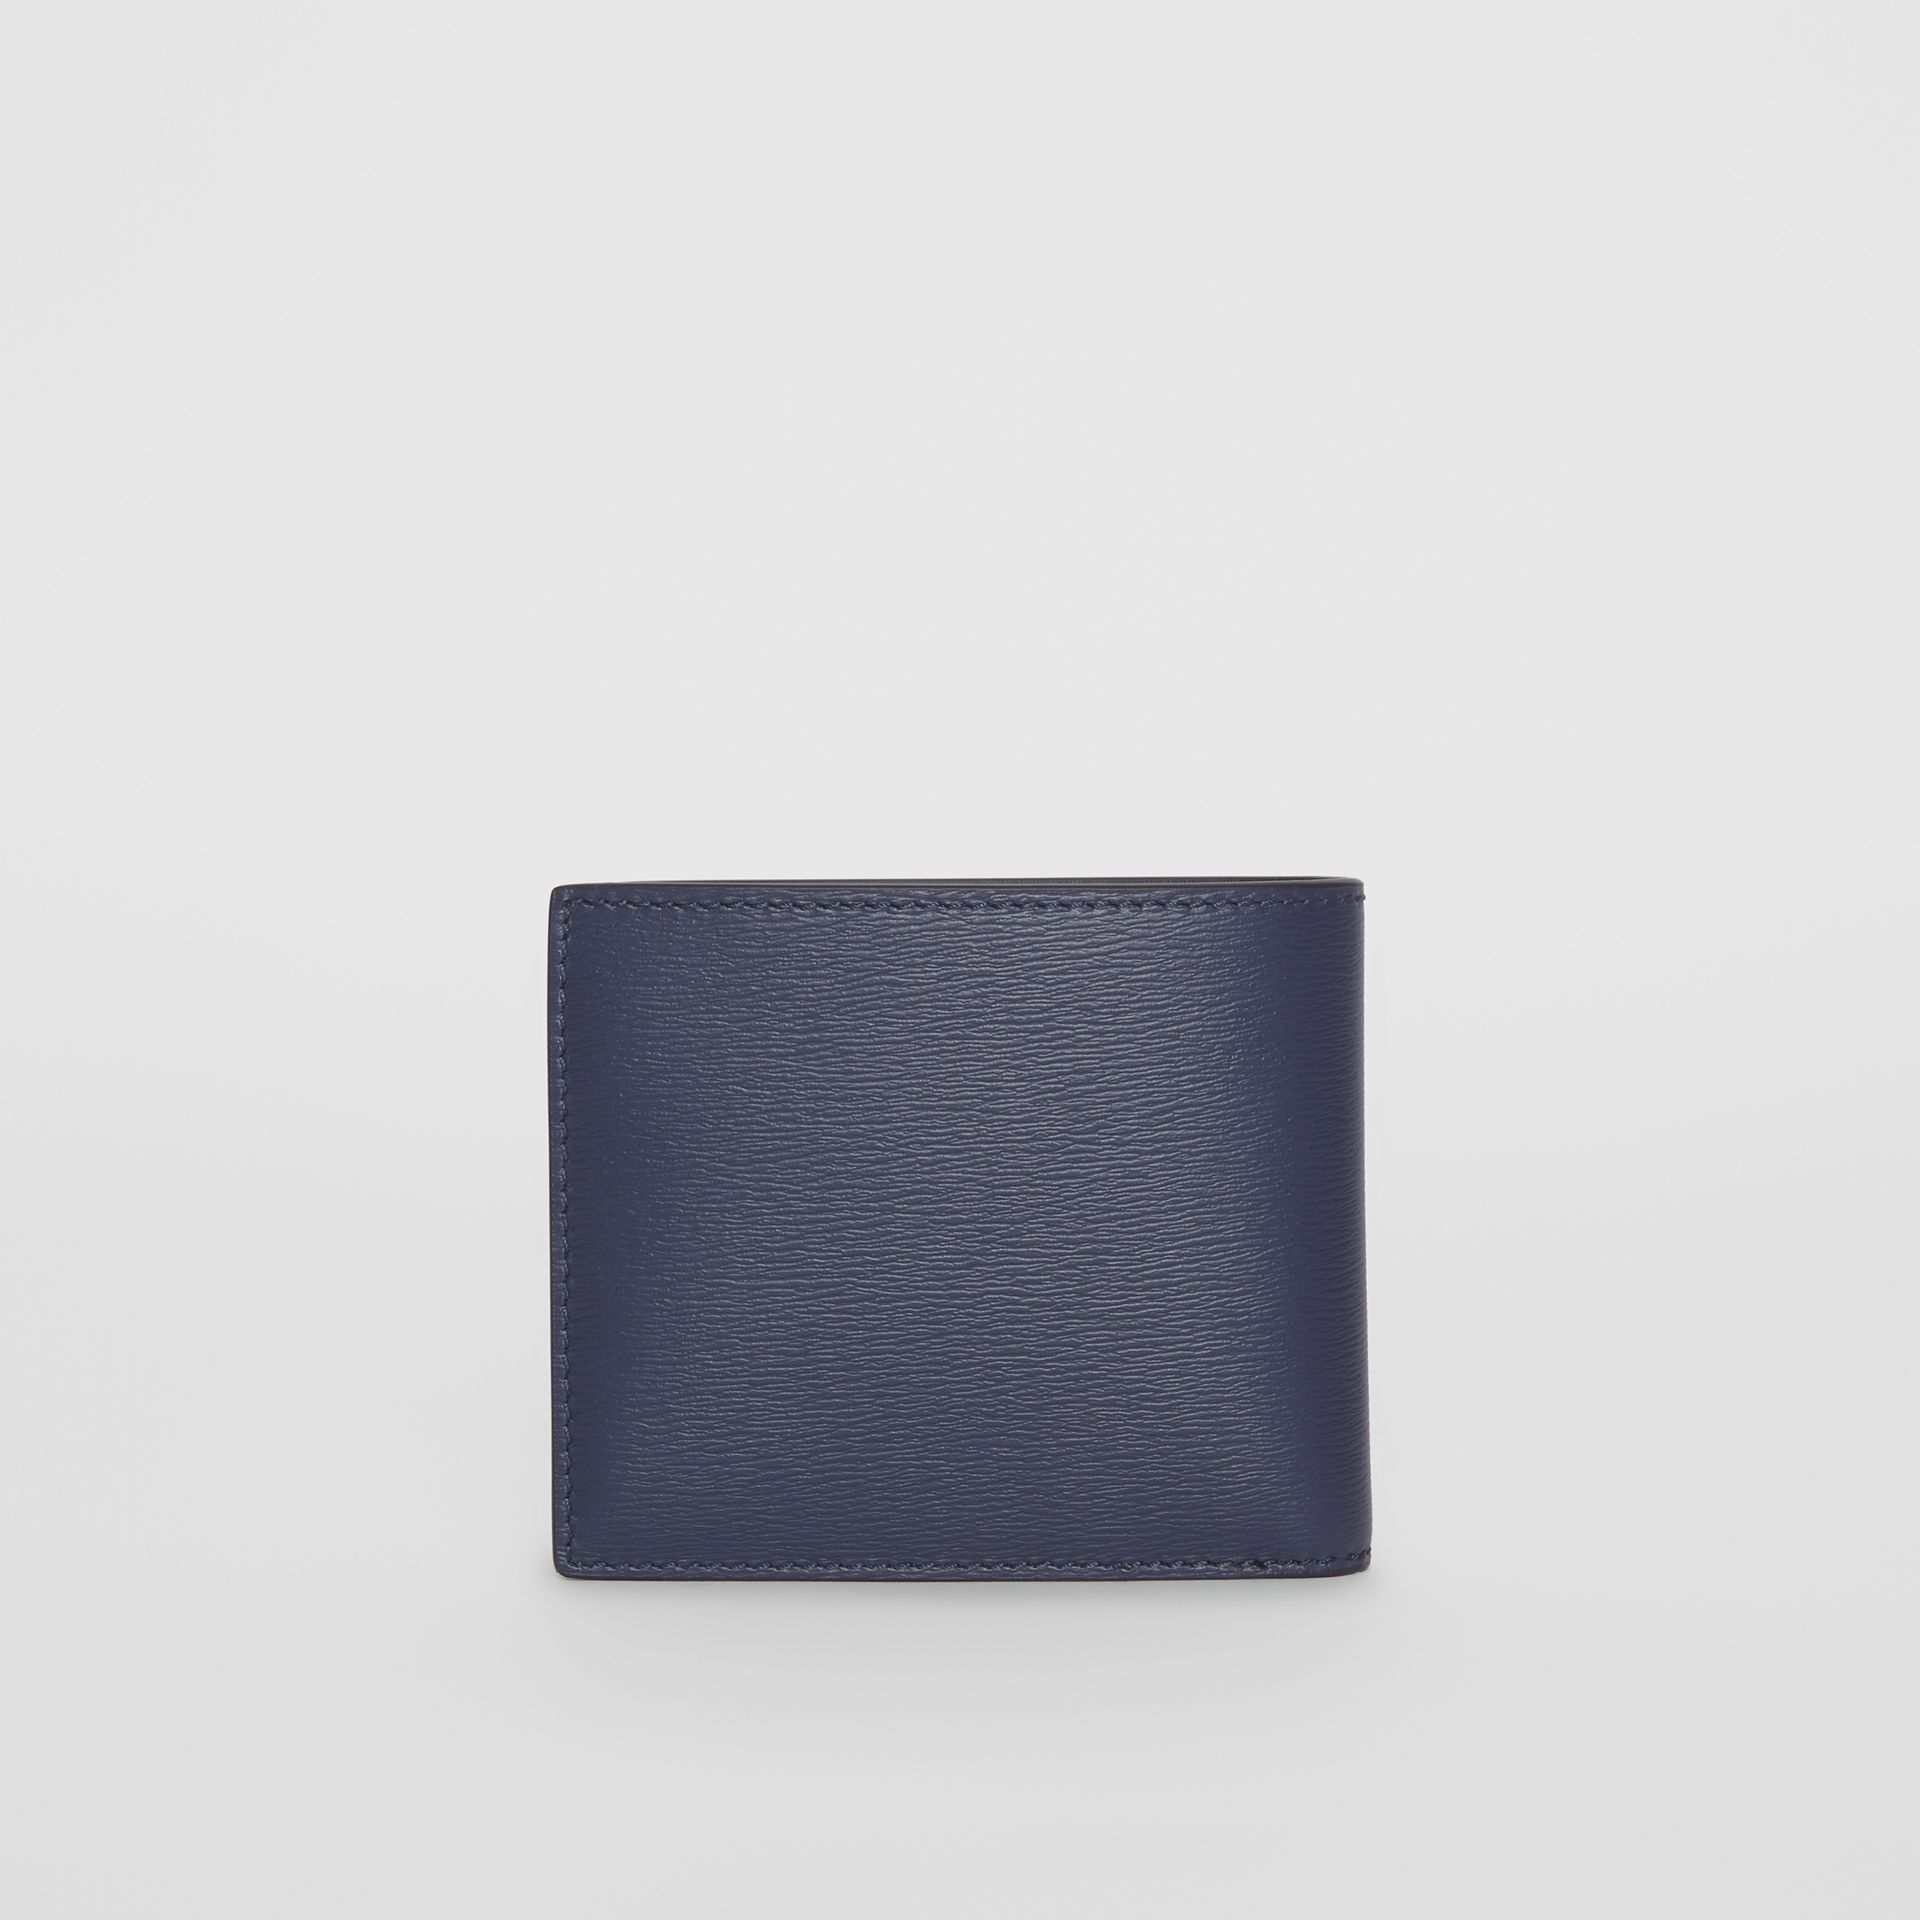 London Leather Bifold Wallet with ID Card Case in Navy - Men | Burberry Singapore - gallery image 4